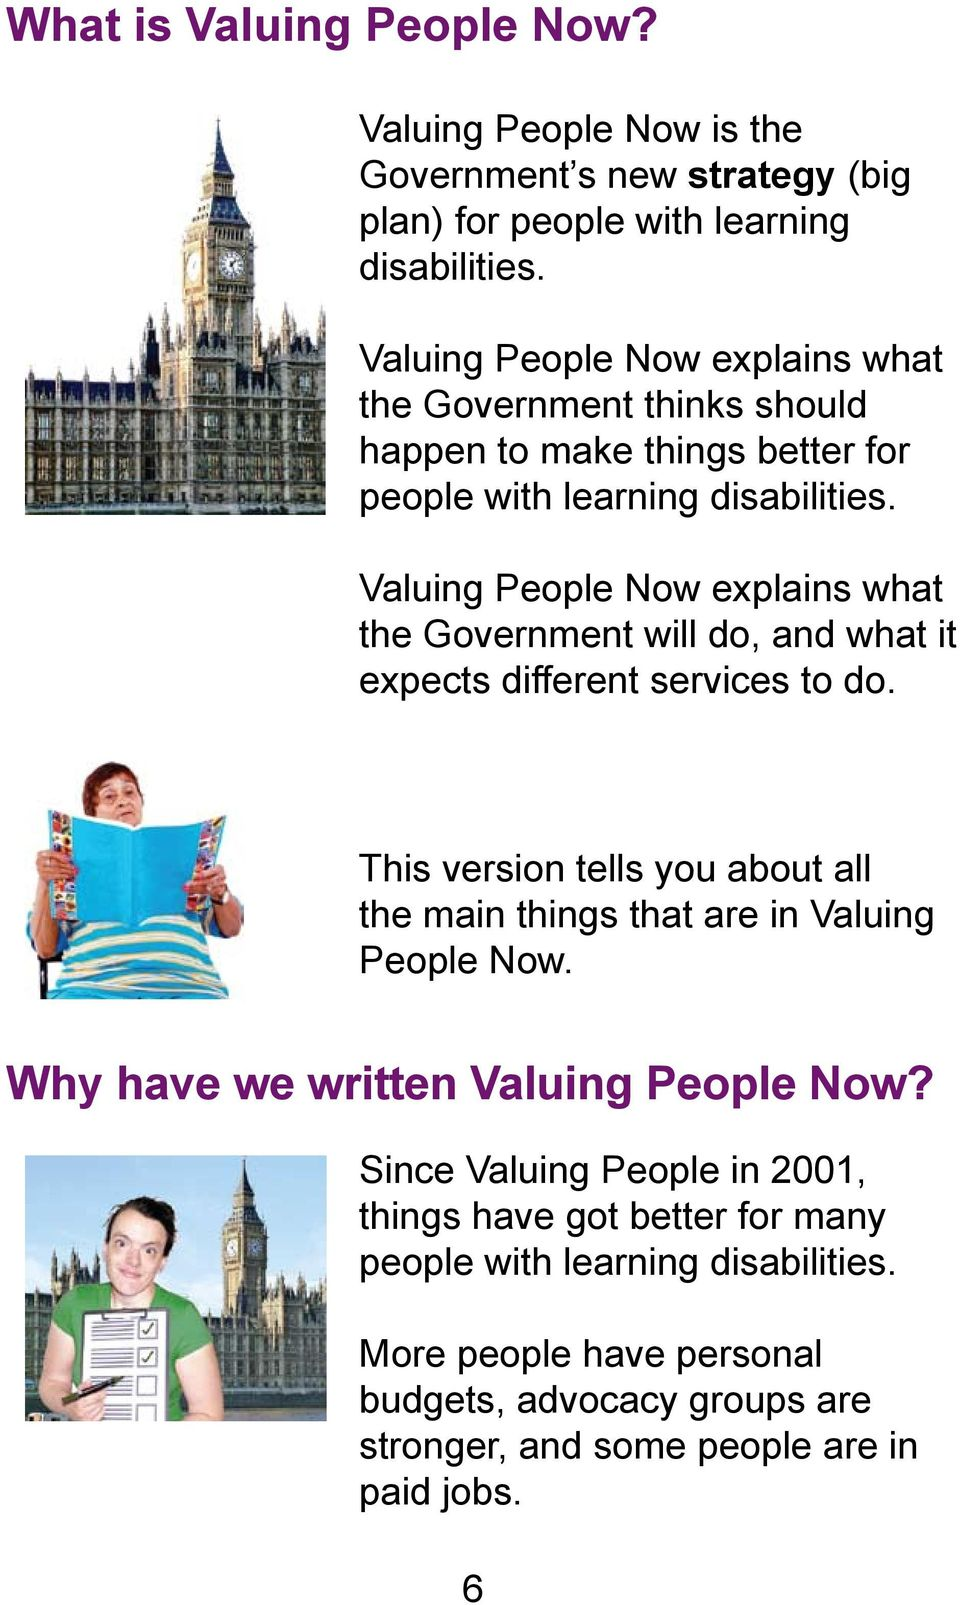 Valuing People Now explains what the Government will do, and what it expects different services to do.